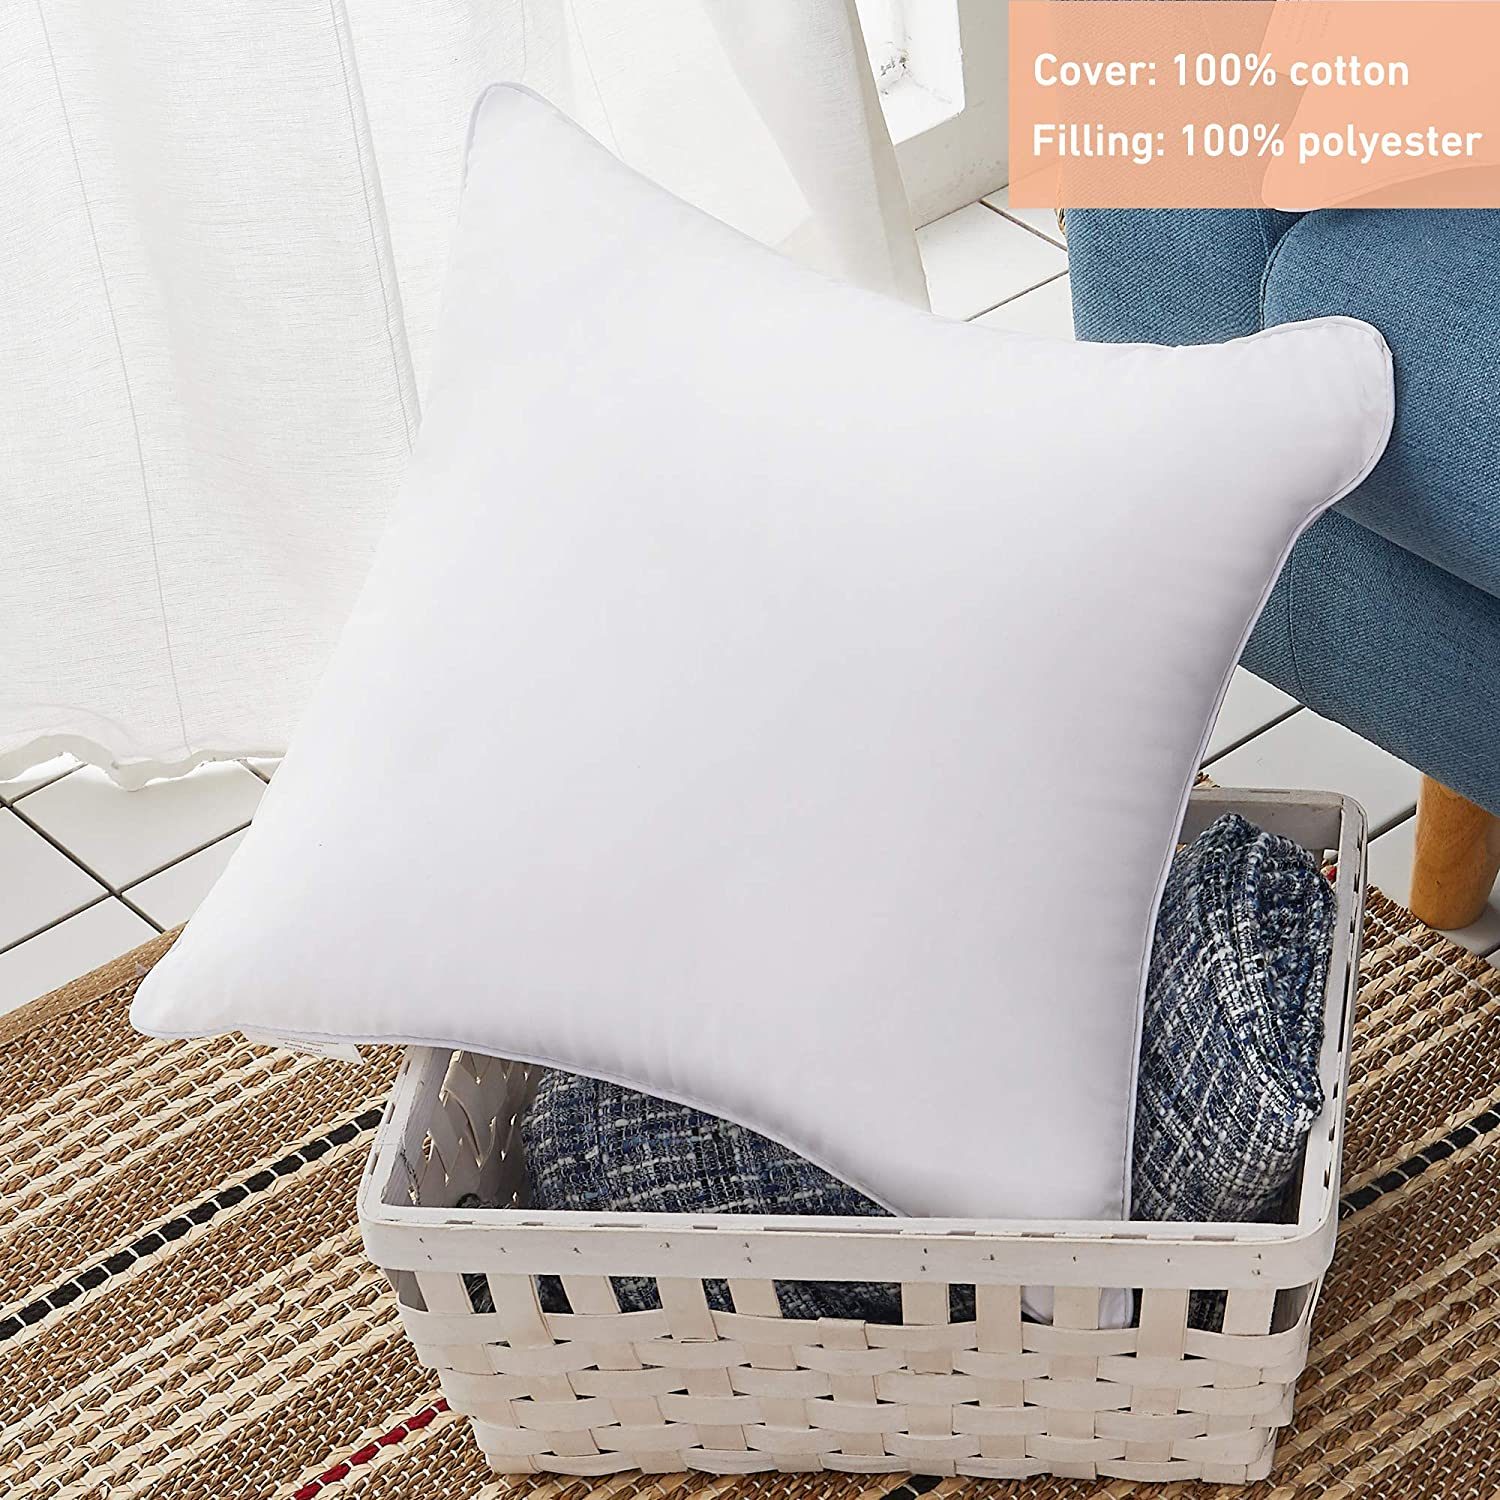 Favriq 100 Cotton Cover 18 X 18 Pillow Inserts Set Of 2 Throw Pillow Inserts Square Interior Sofa Pillow Inserts Decorative Pillow Insert Pair White Couch Pillow Kitchen Dining